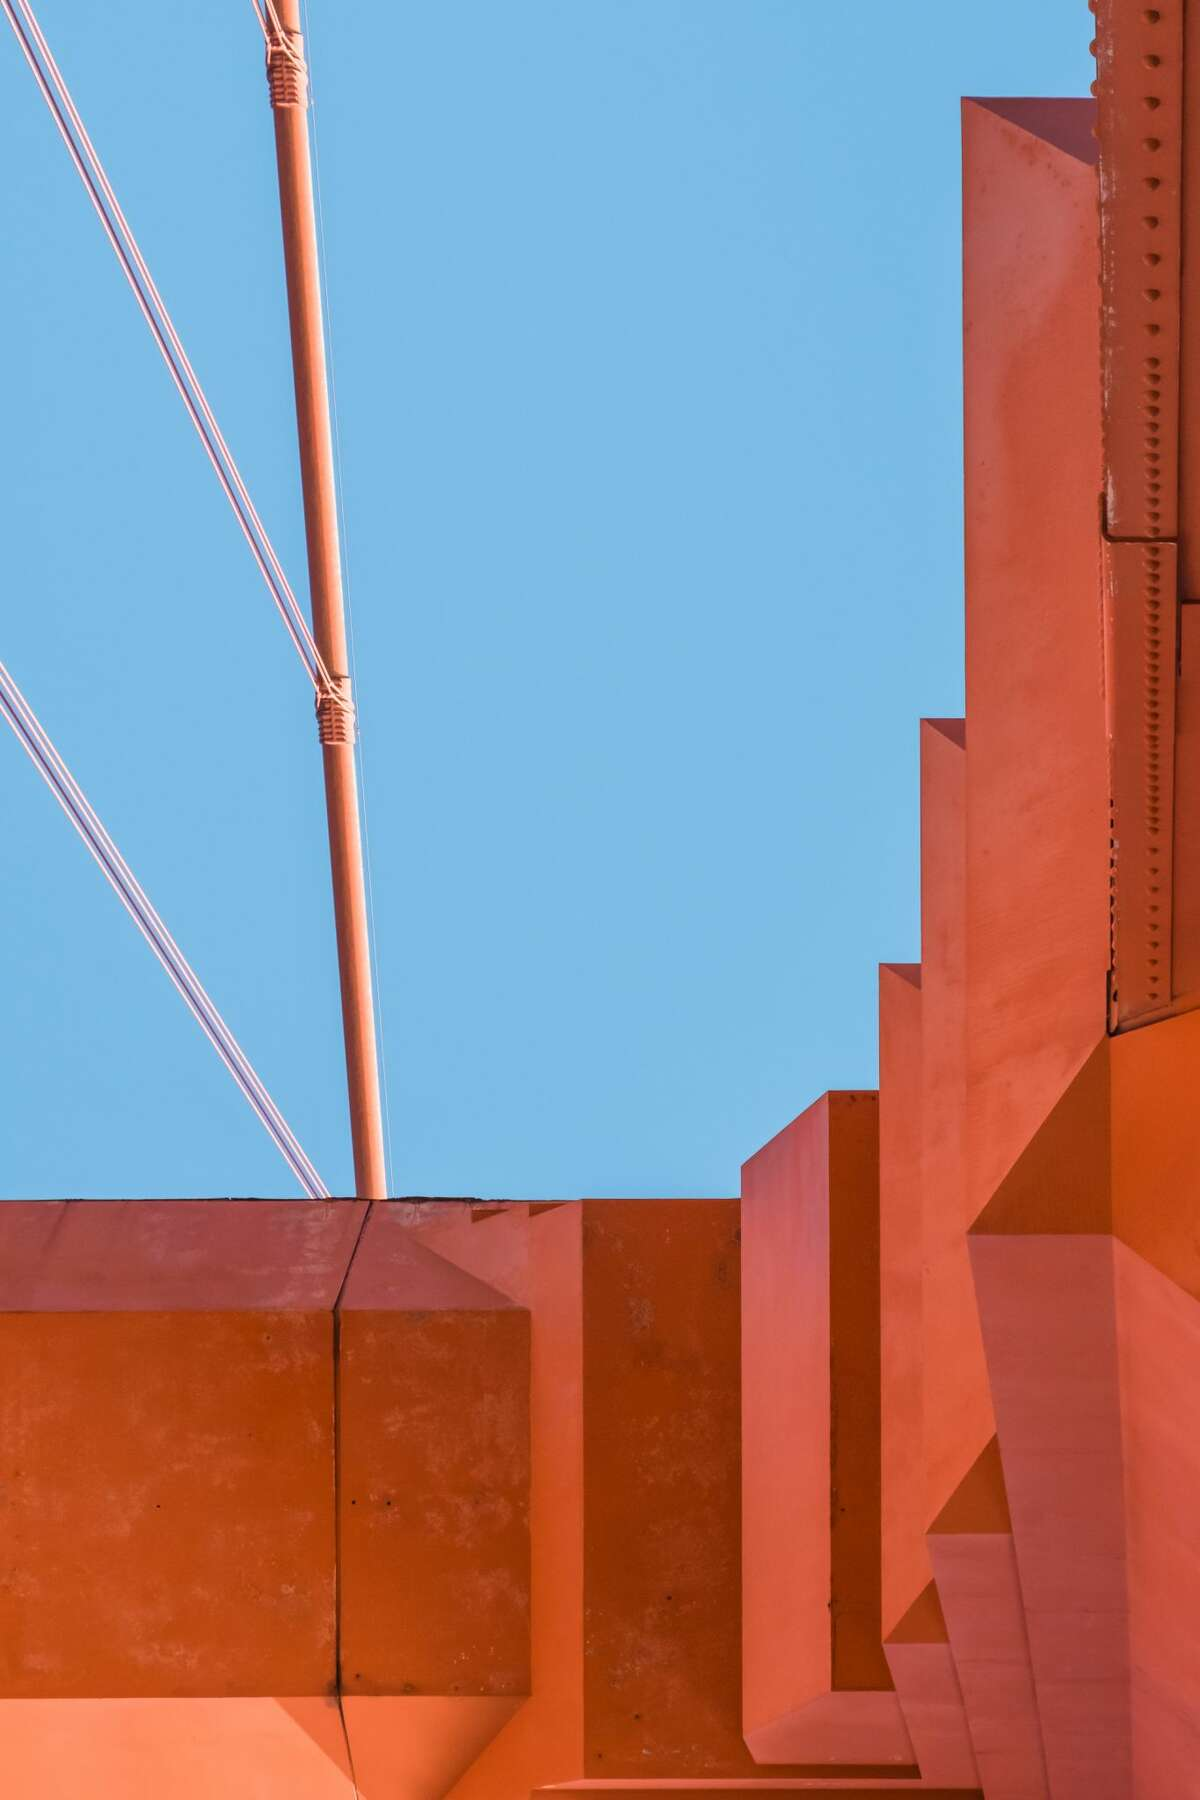 Photographer Michael Yuan spent two and a half years photographing the structure and design elements of the Golden Gate Bridge.